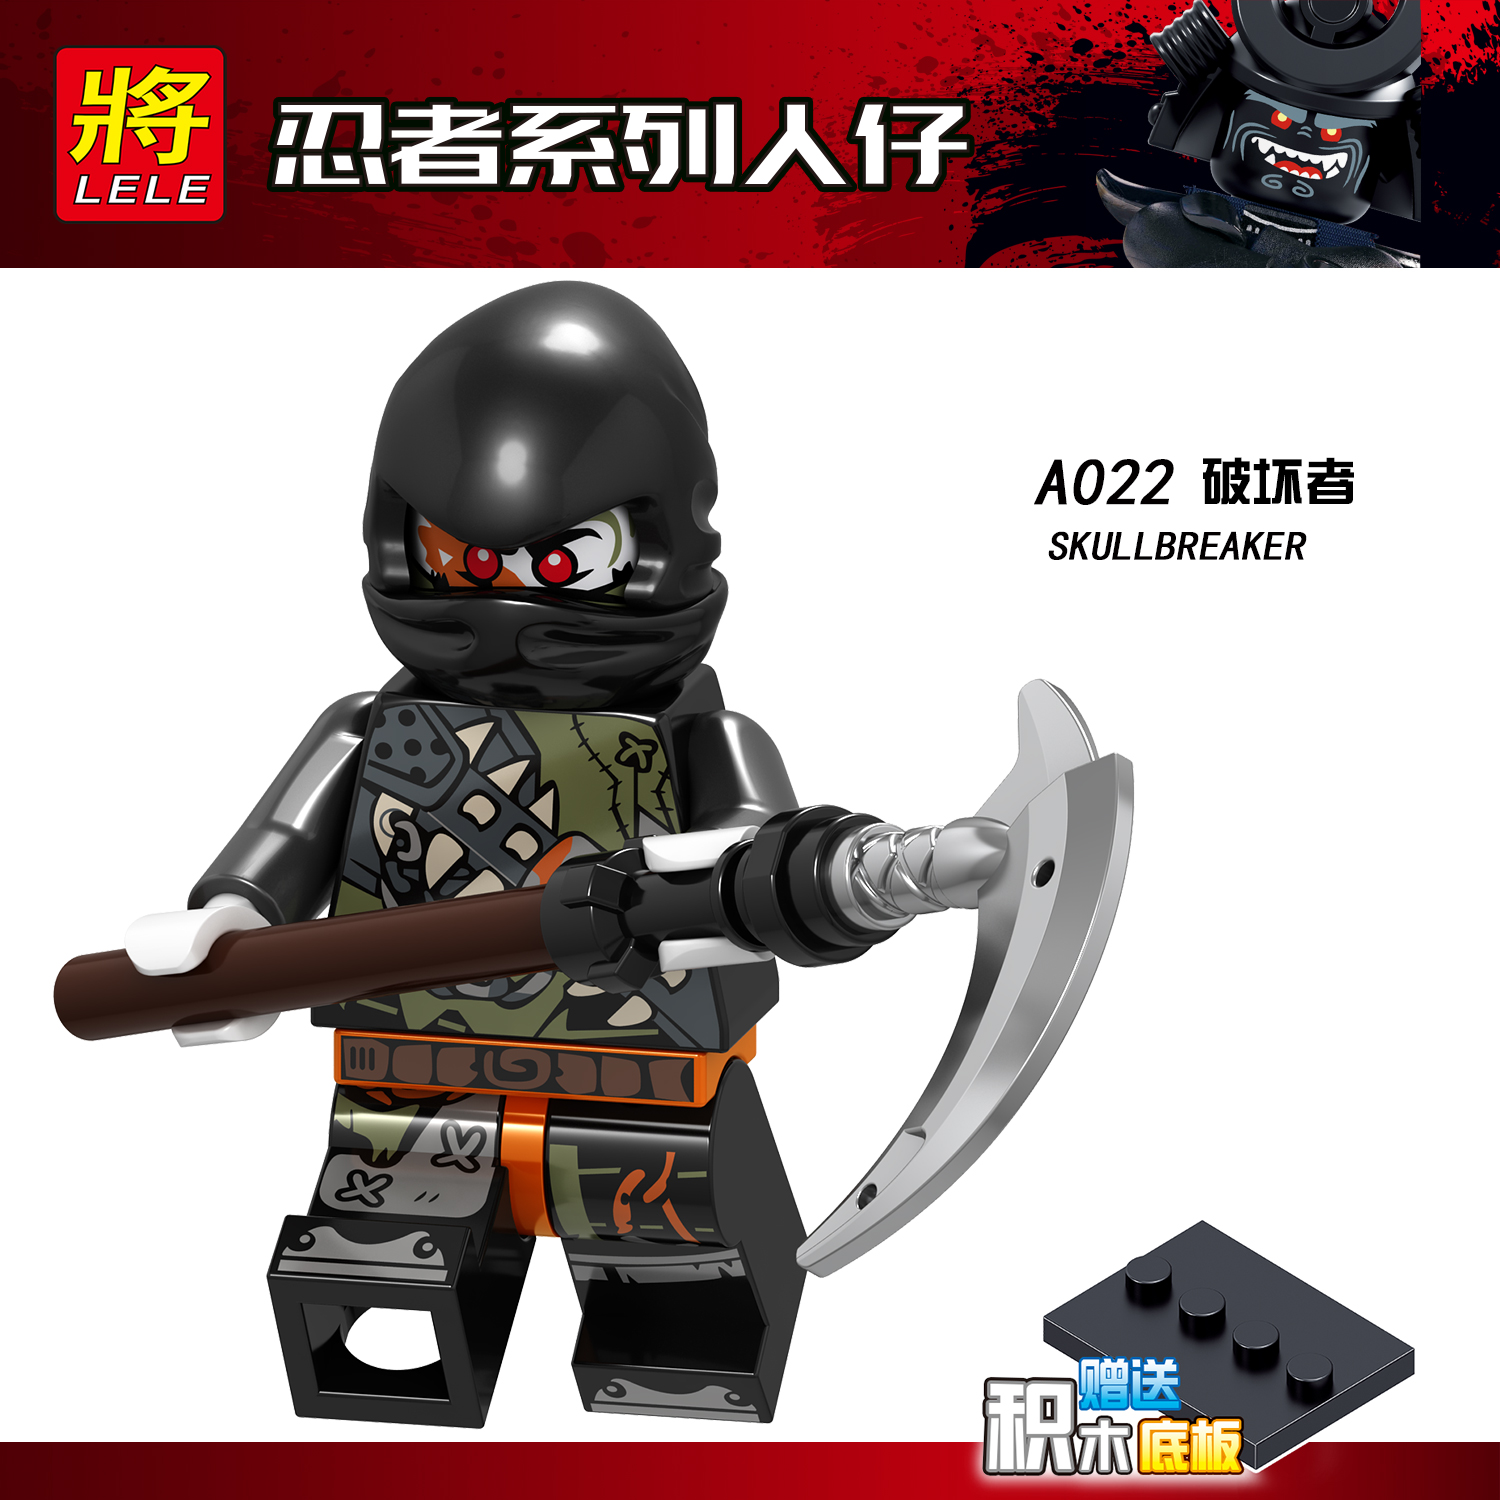 Imported From Abroad Technic Gold Ninjago Compatible Legoinglys Golden Building Blocks Figures Lot Kai Jay Cole Educational Boy Toys 4 In 1 Toys & Hobbies